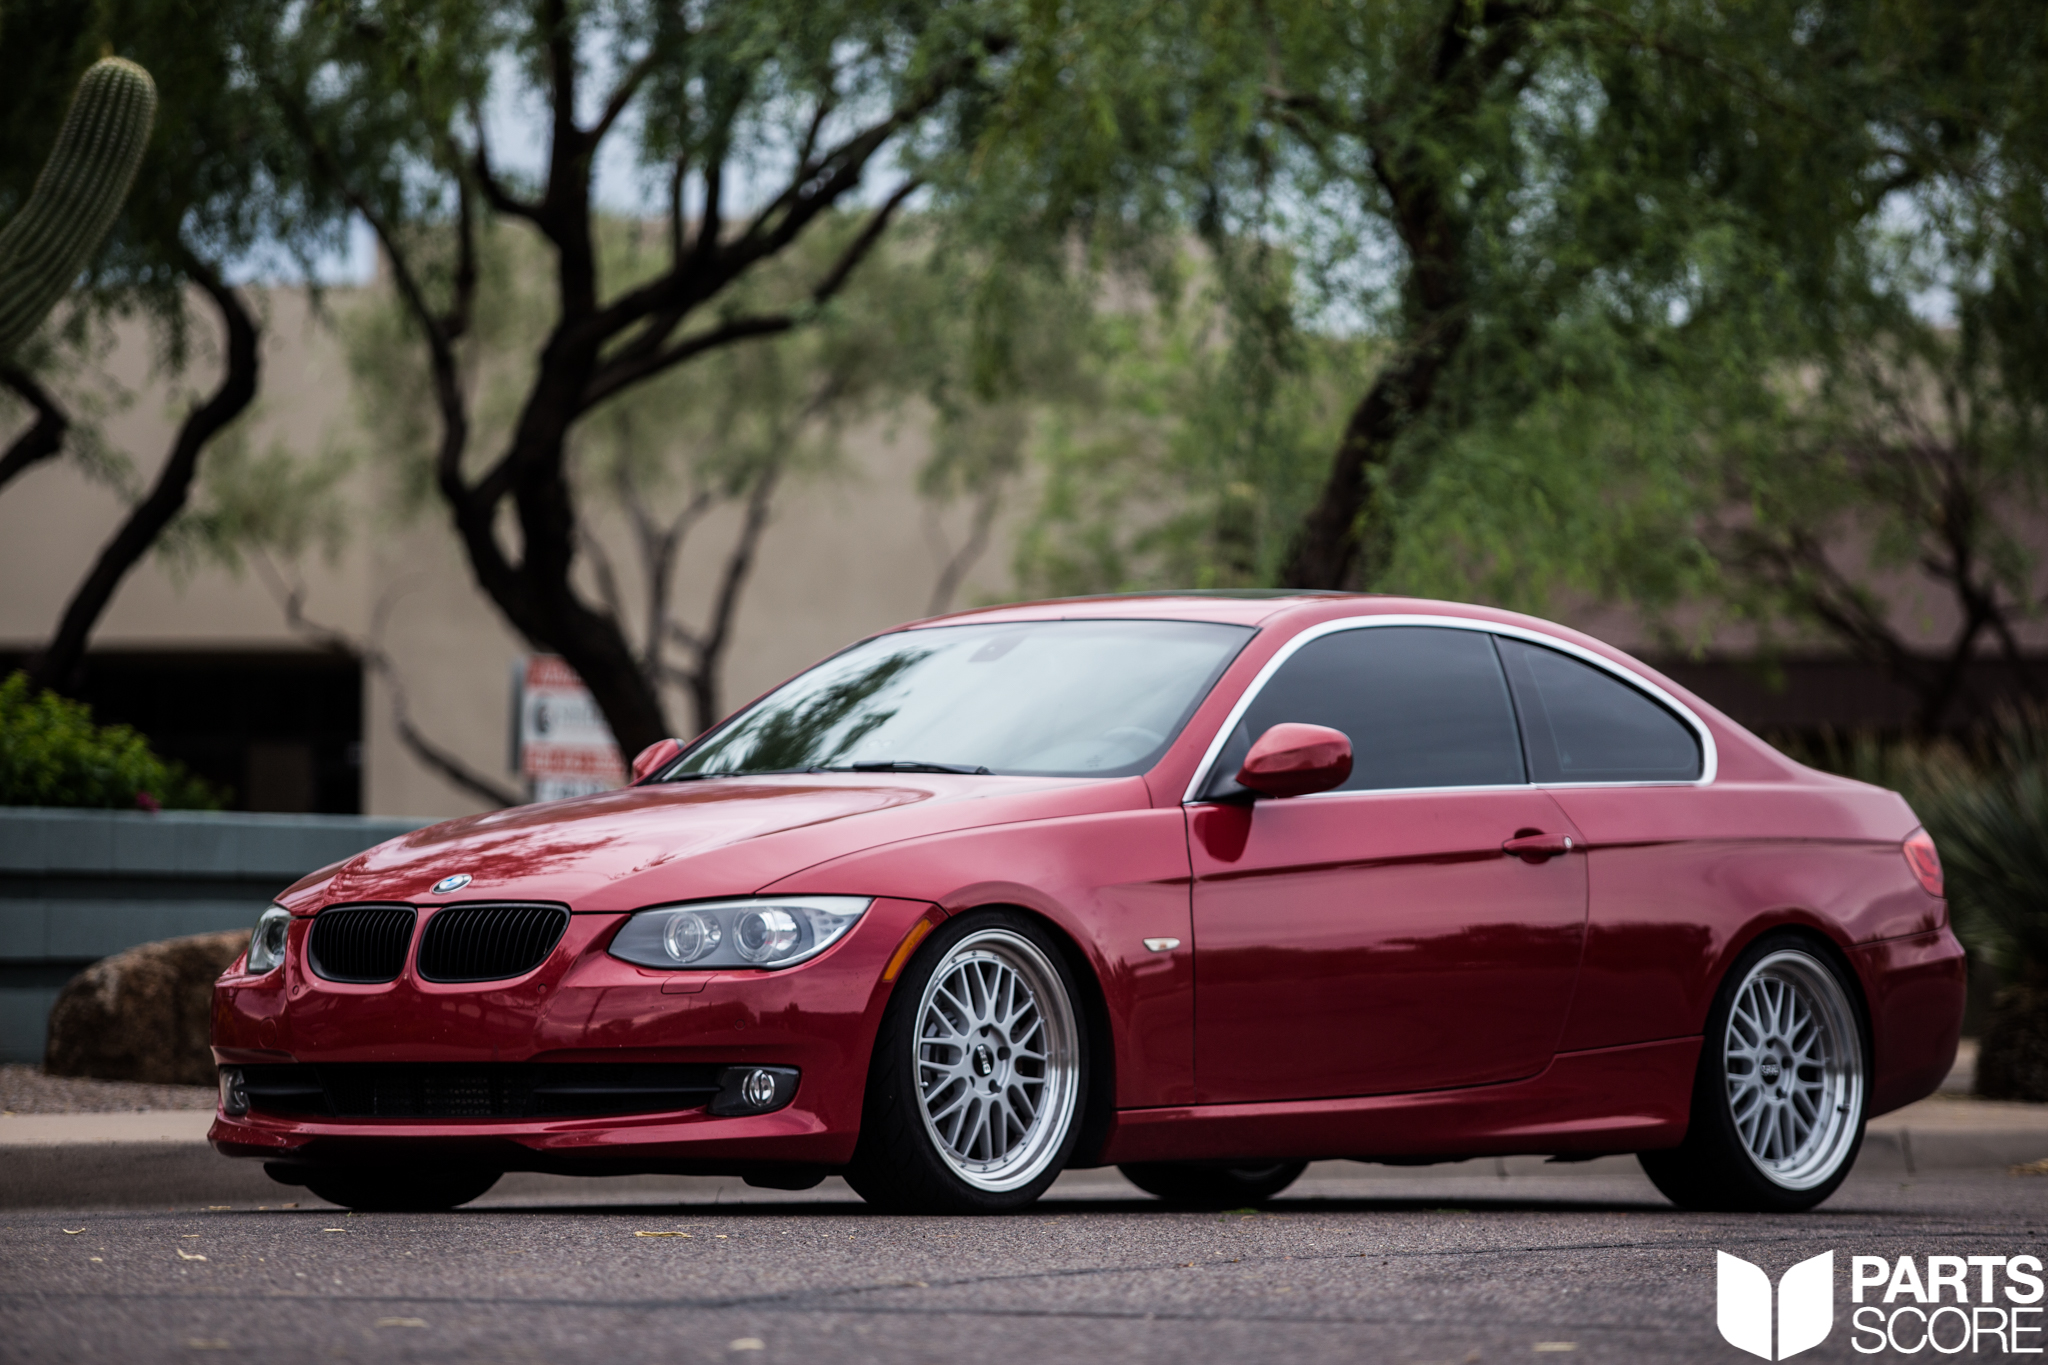 BMW E92 N55 335i : Burger Tuning JB4 + Evolution Racewerks - Parts Score